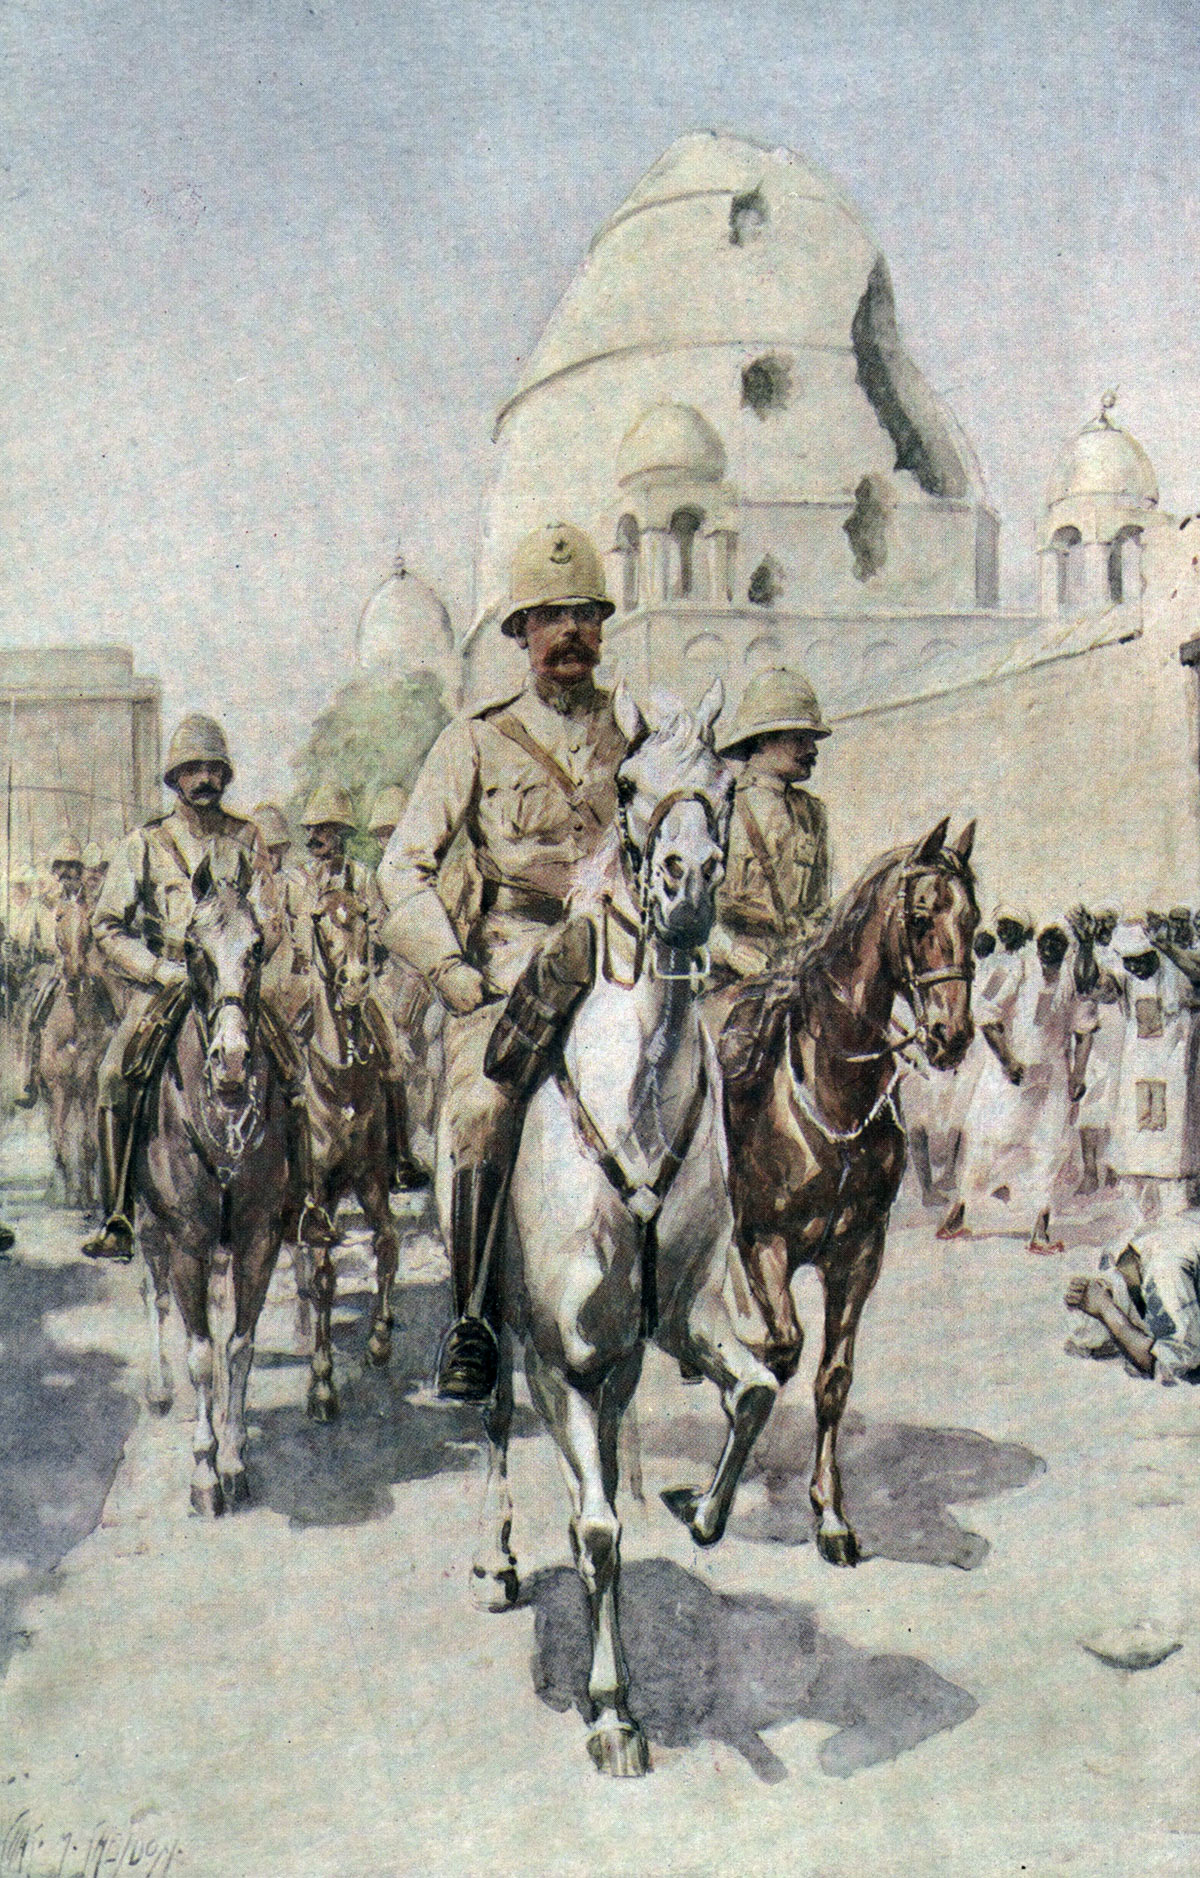 Kitchener enters Omdurman, passing the damaged Mahdi's Tomb, after the Battle of Omdurman on 2nd September 1898 in the Sudanese War